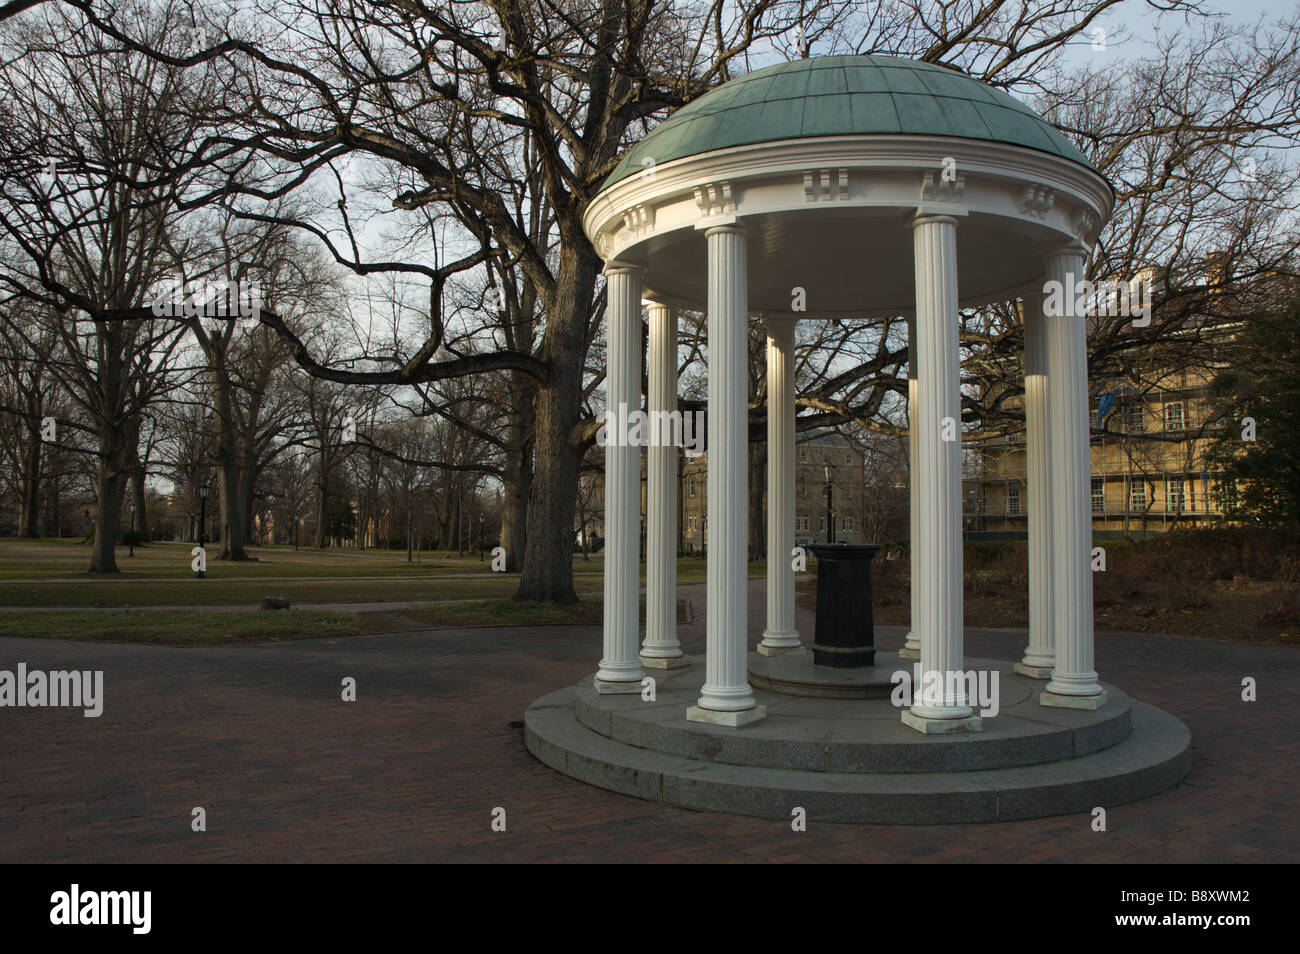 The Old Well, University of North Carolina at Chapel Hill Stock Photo